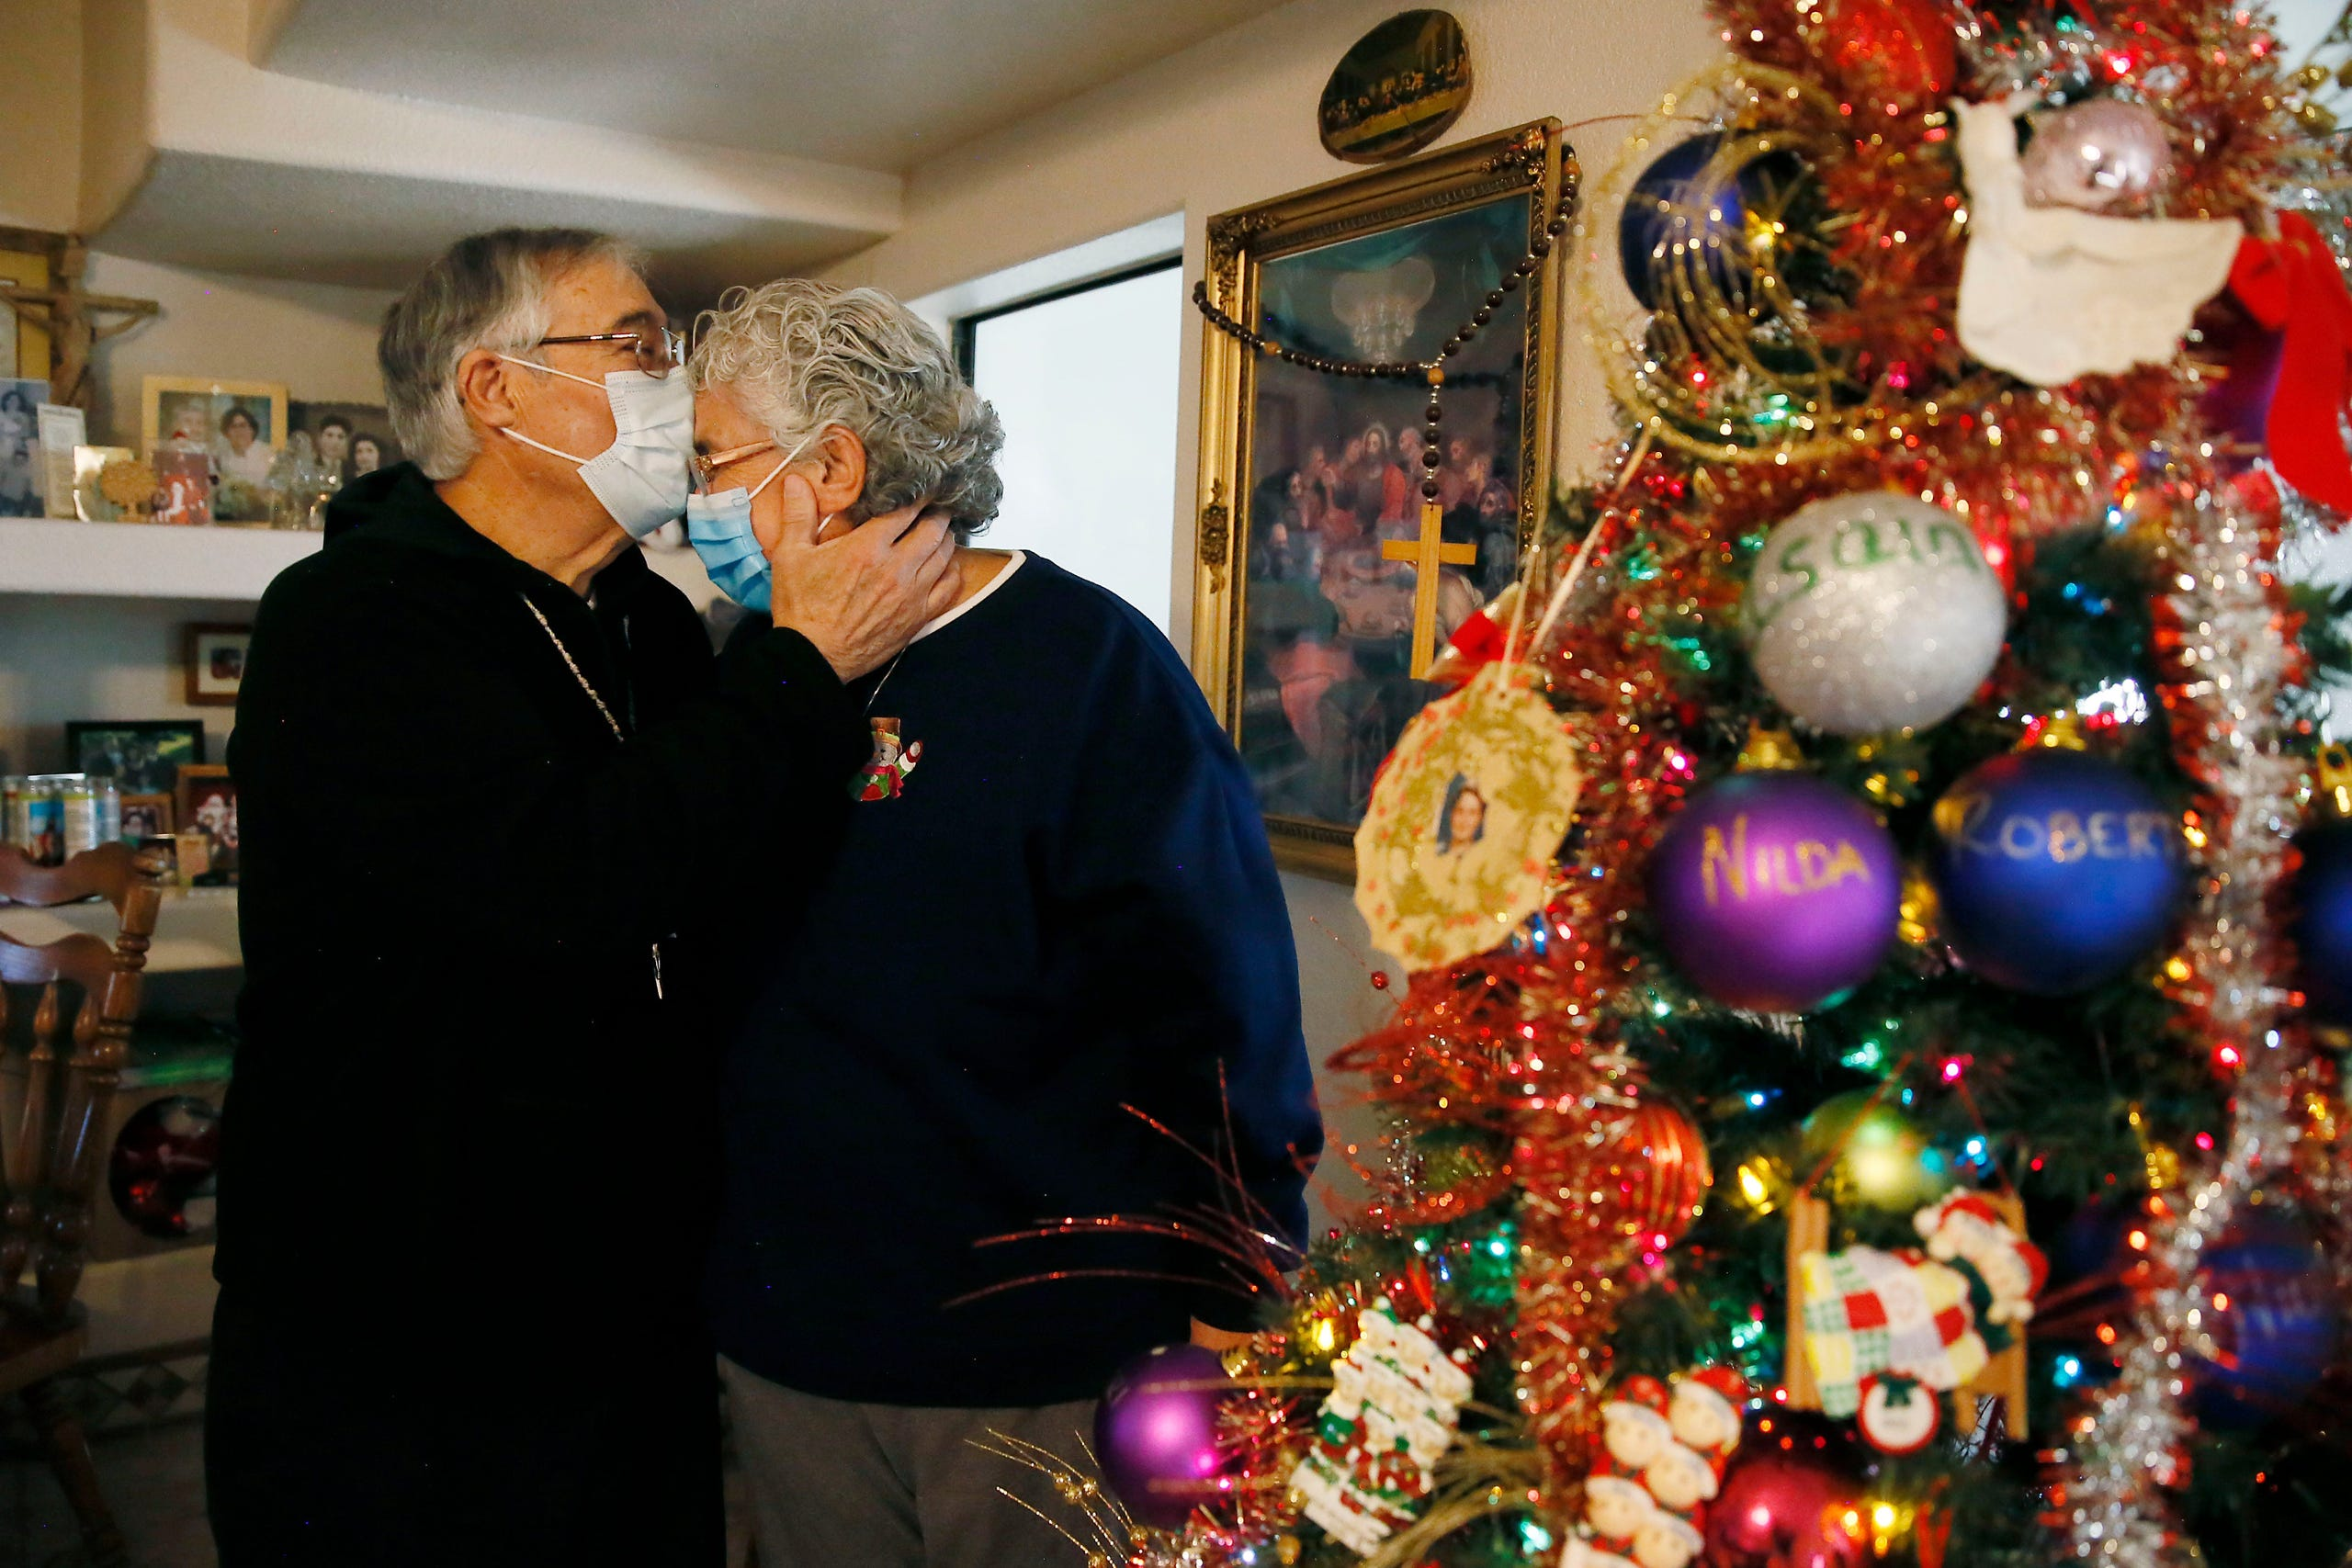 Roberto Mata gives his wife Mary Alice a kiss on the forehead by their Christmas tree Wednesday, Dec. 16, 2020, at their home in Chaparral, New Mexico. He survived COVID-19 after spending 47 days at the Hospital of Providence Memorial Campus in El Paso earlier this year. The Mata family says they are grateful for their health and for his recovery.MAIN_Mata Family Covid 19 001